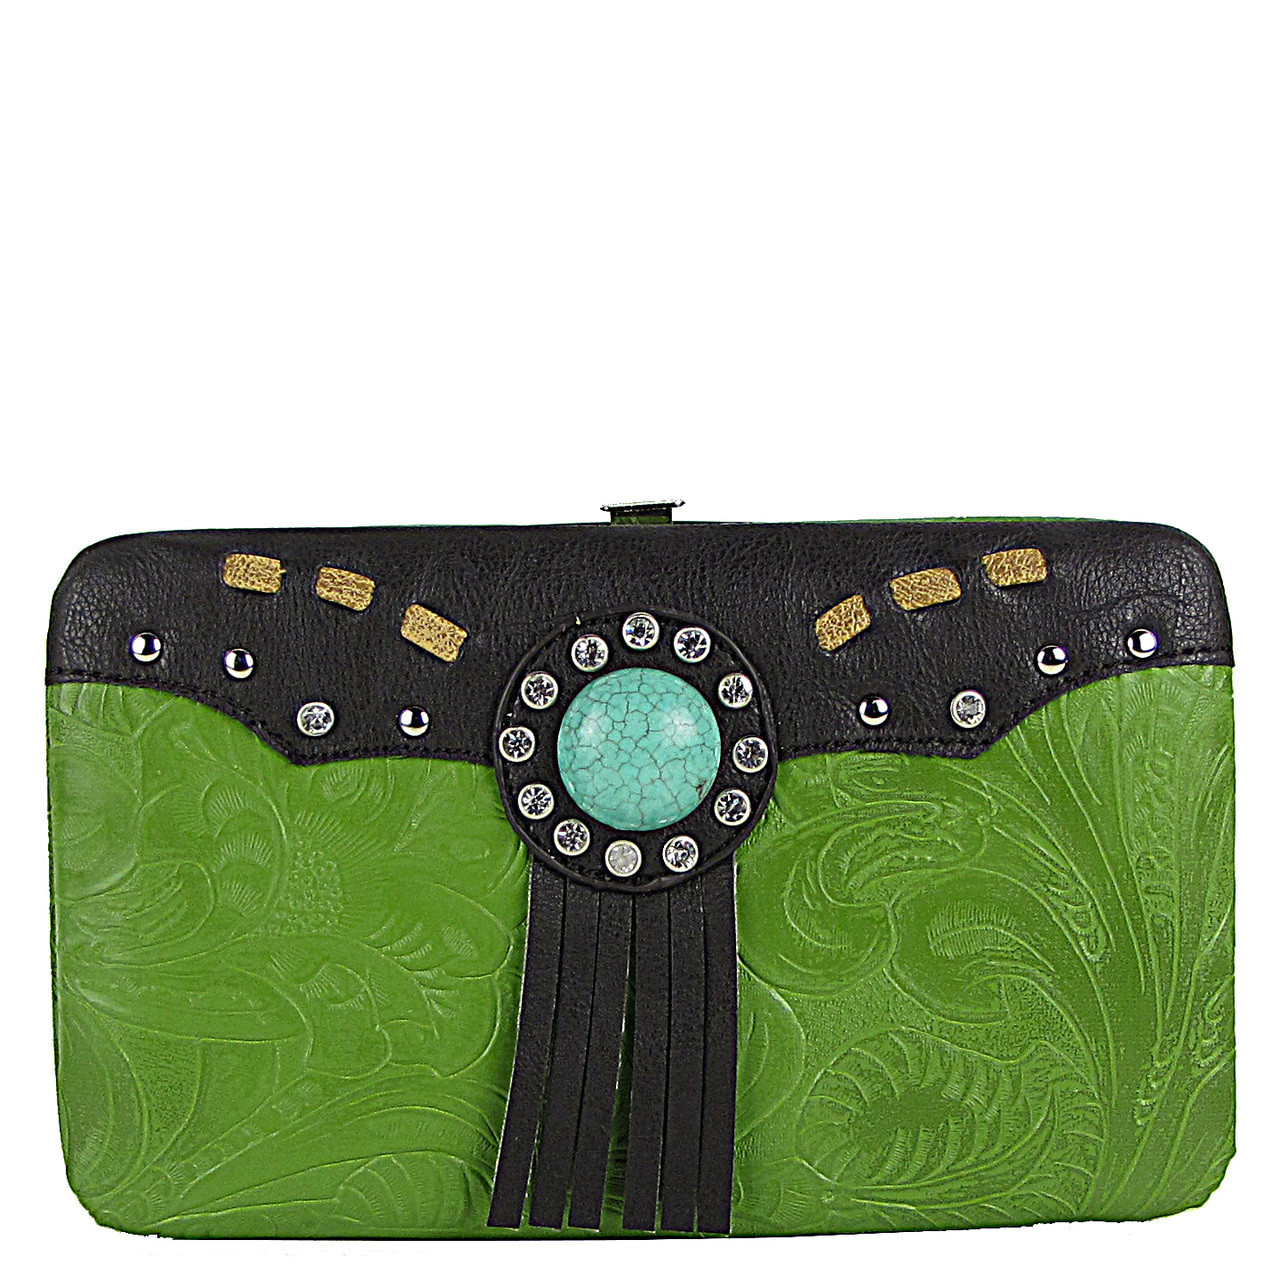 GREEN WESTERN TOOLED TASSEL LOOK FLAT THICK WALLET FW2-1261GRN